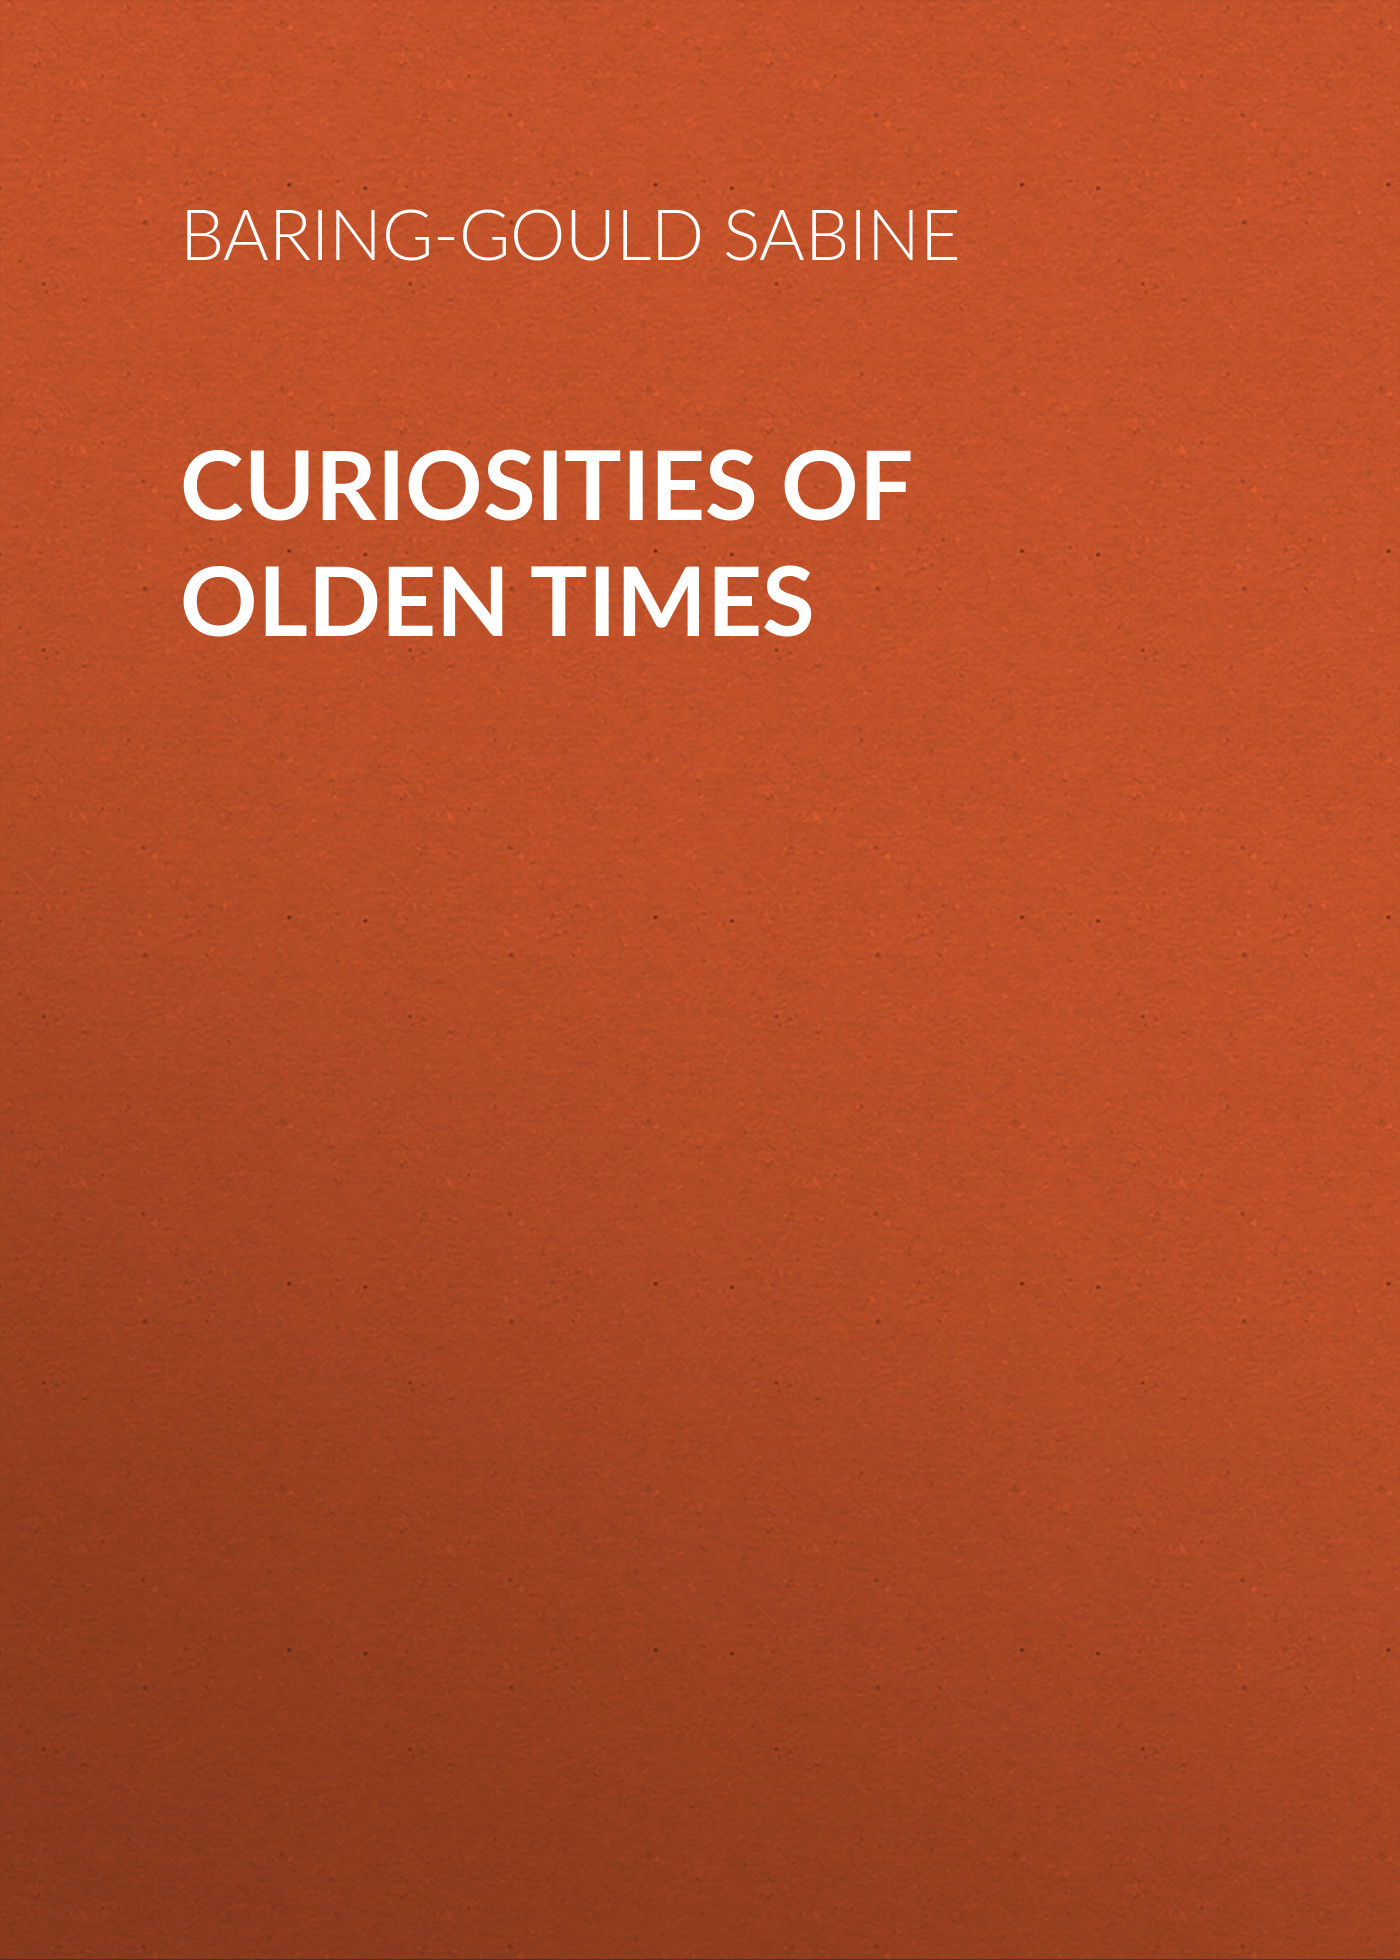 Baring-Gould Sabine Curiosities of Olden Times